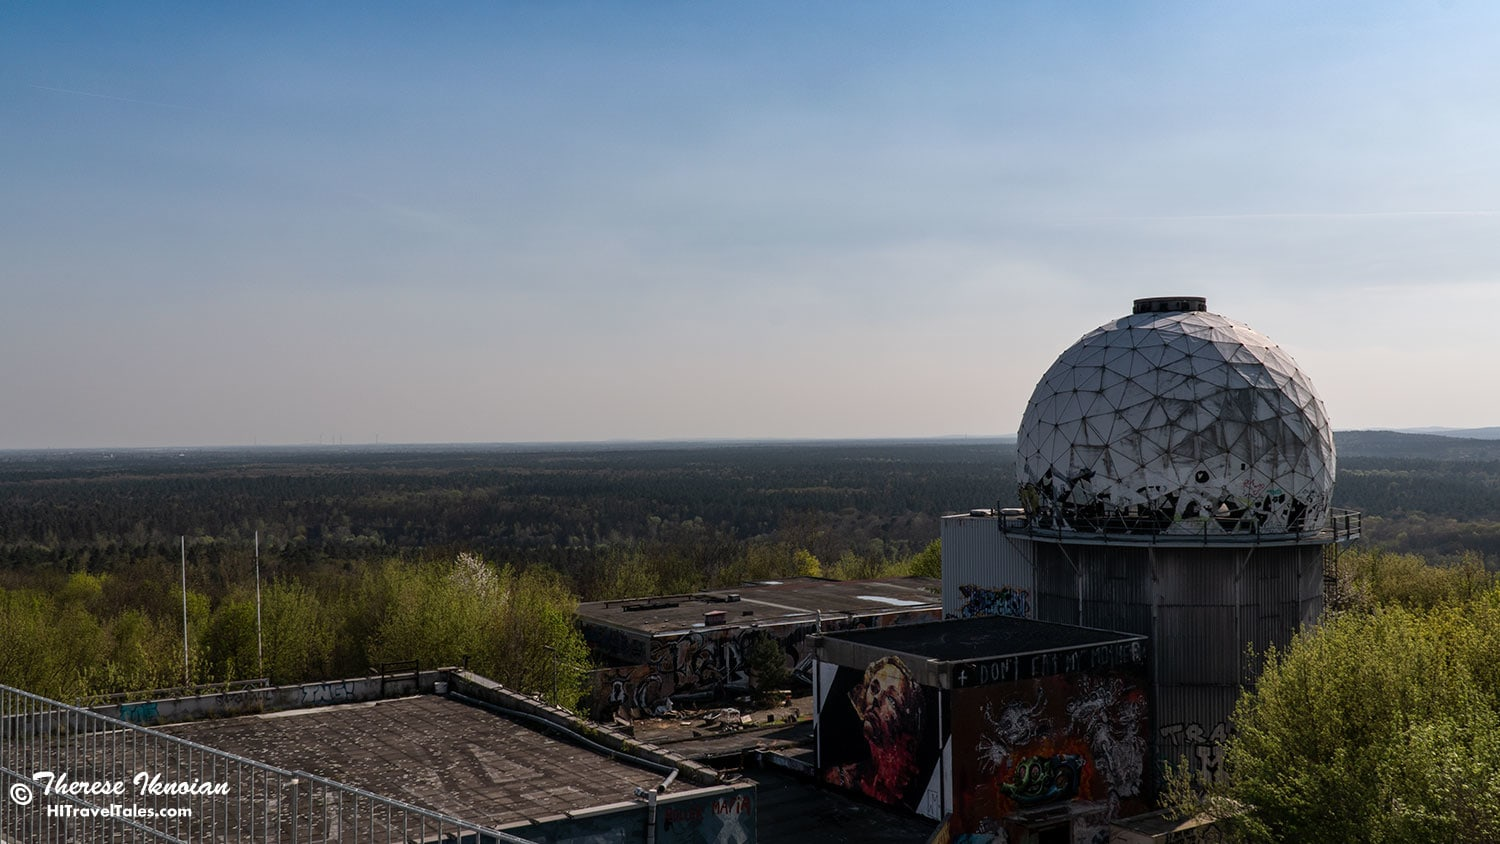 Looking out at the horizon from the building at Teufelsberg.